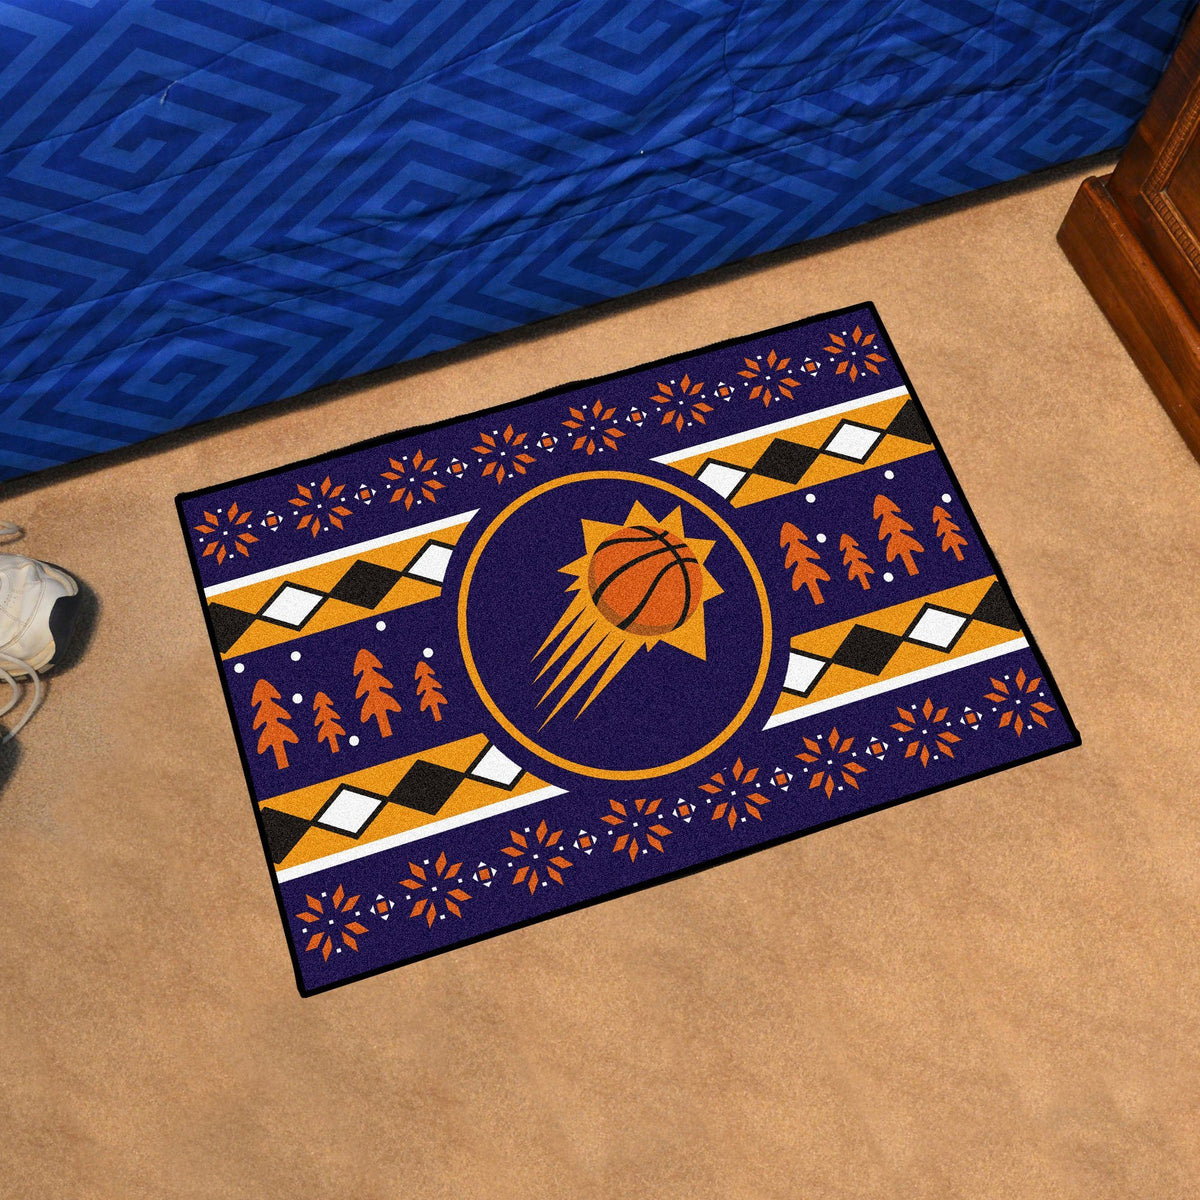 NBA - Holiday Sweater Starter Mat NBA Mats, Rectangular Mats, Holiday Sweater Starter Mat, NBA, Home Fan Mats Phoenix Suns